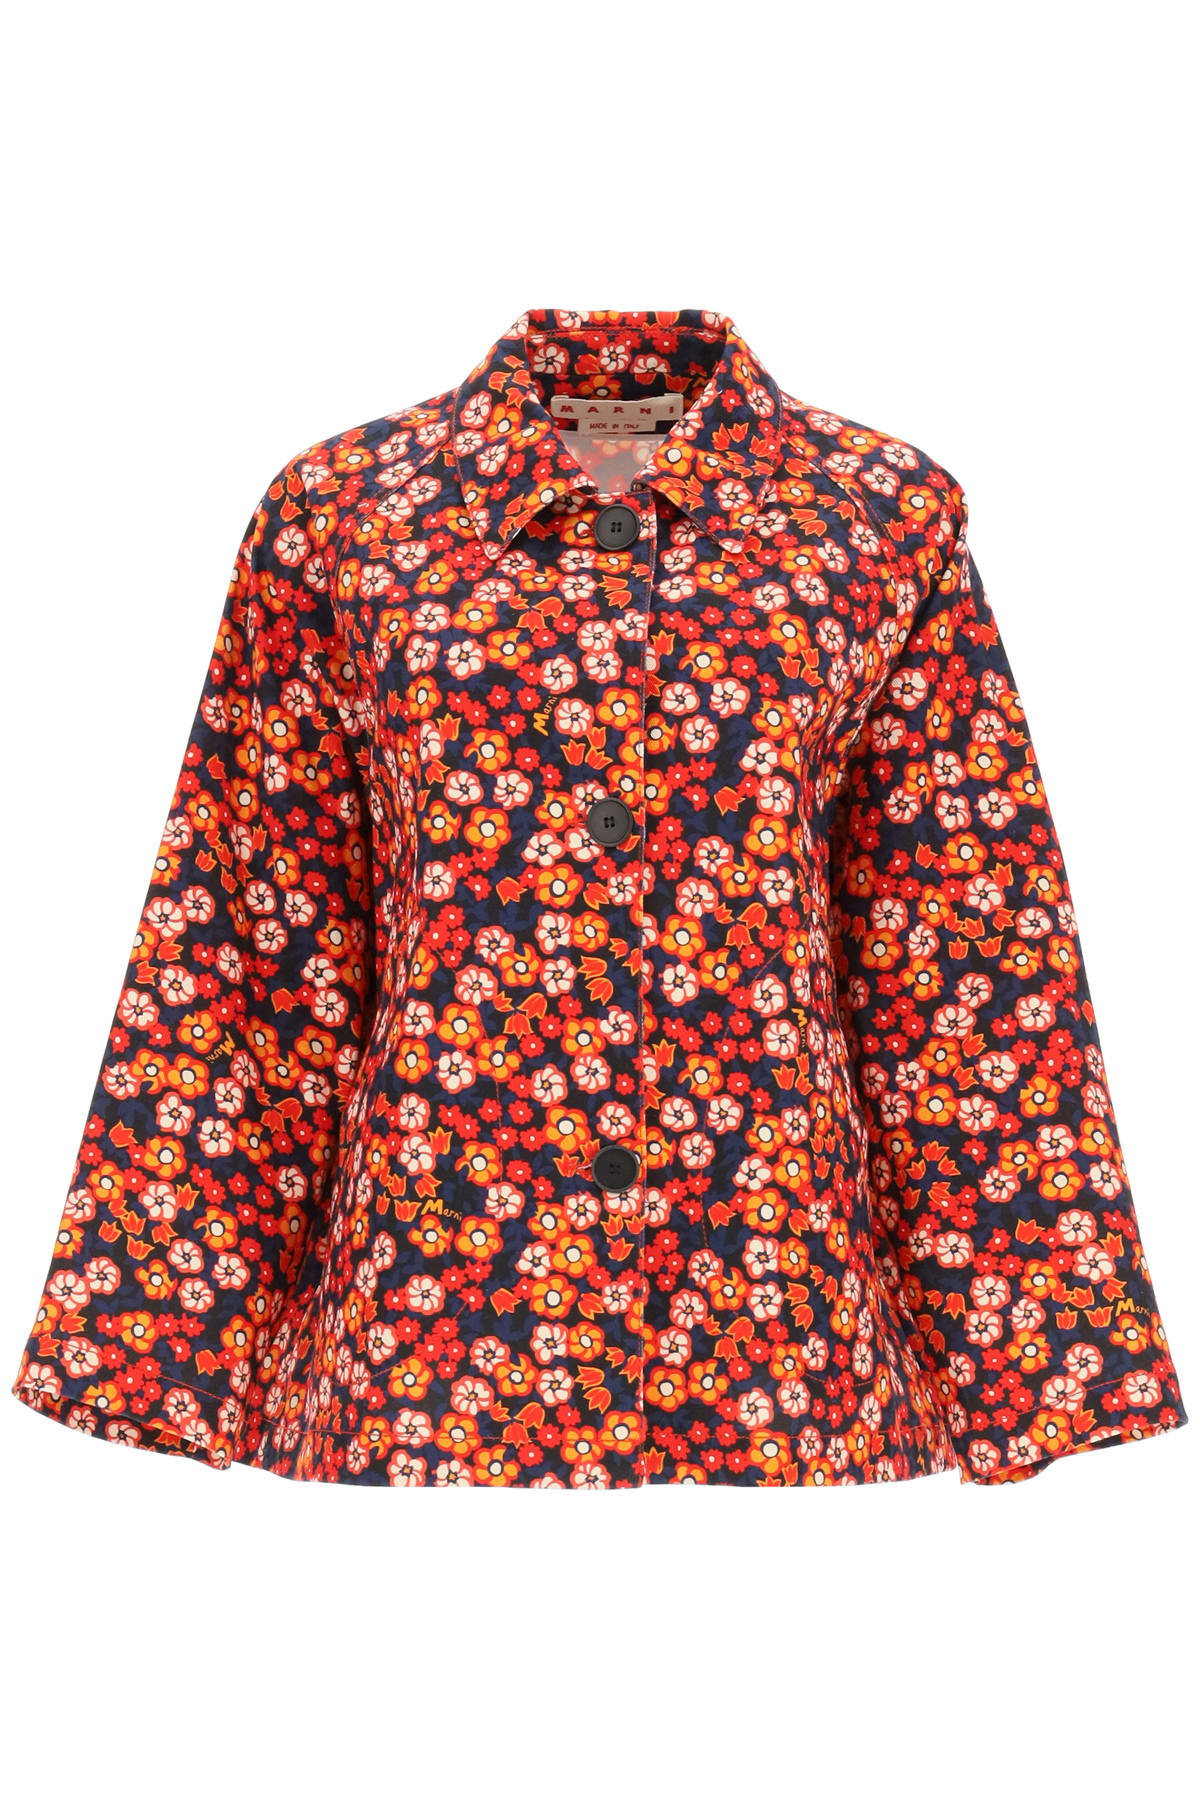 Marni POP GARDEN PRINT JACKET